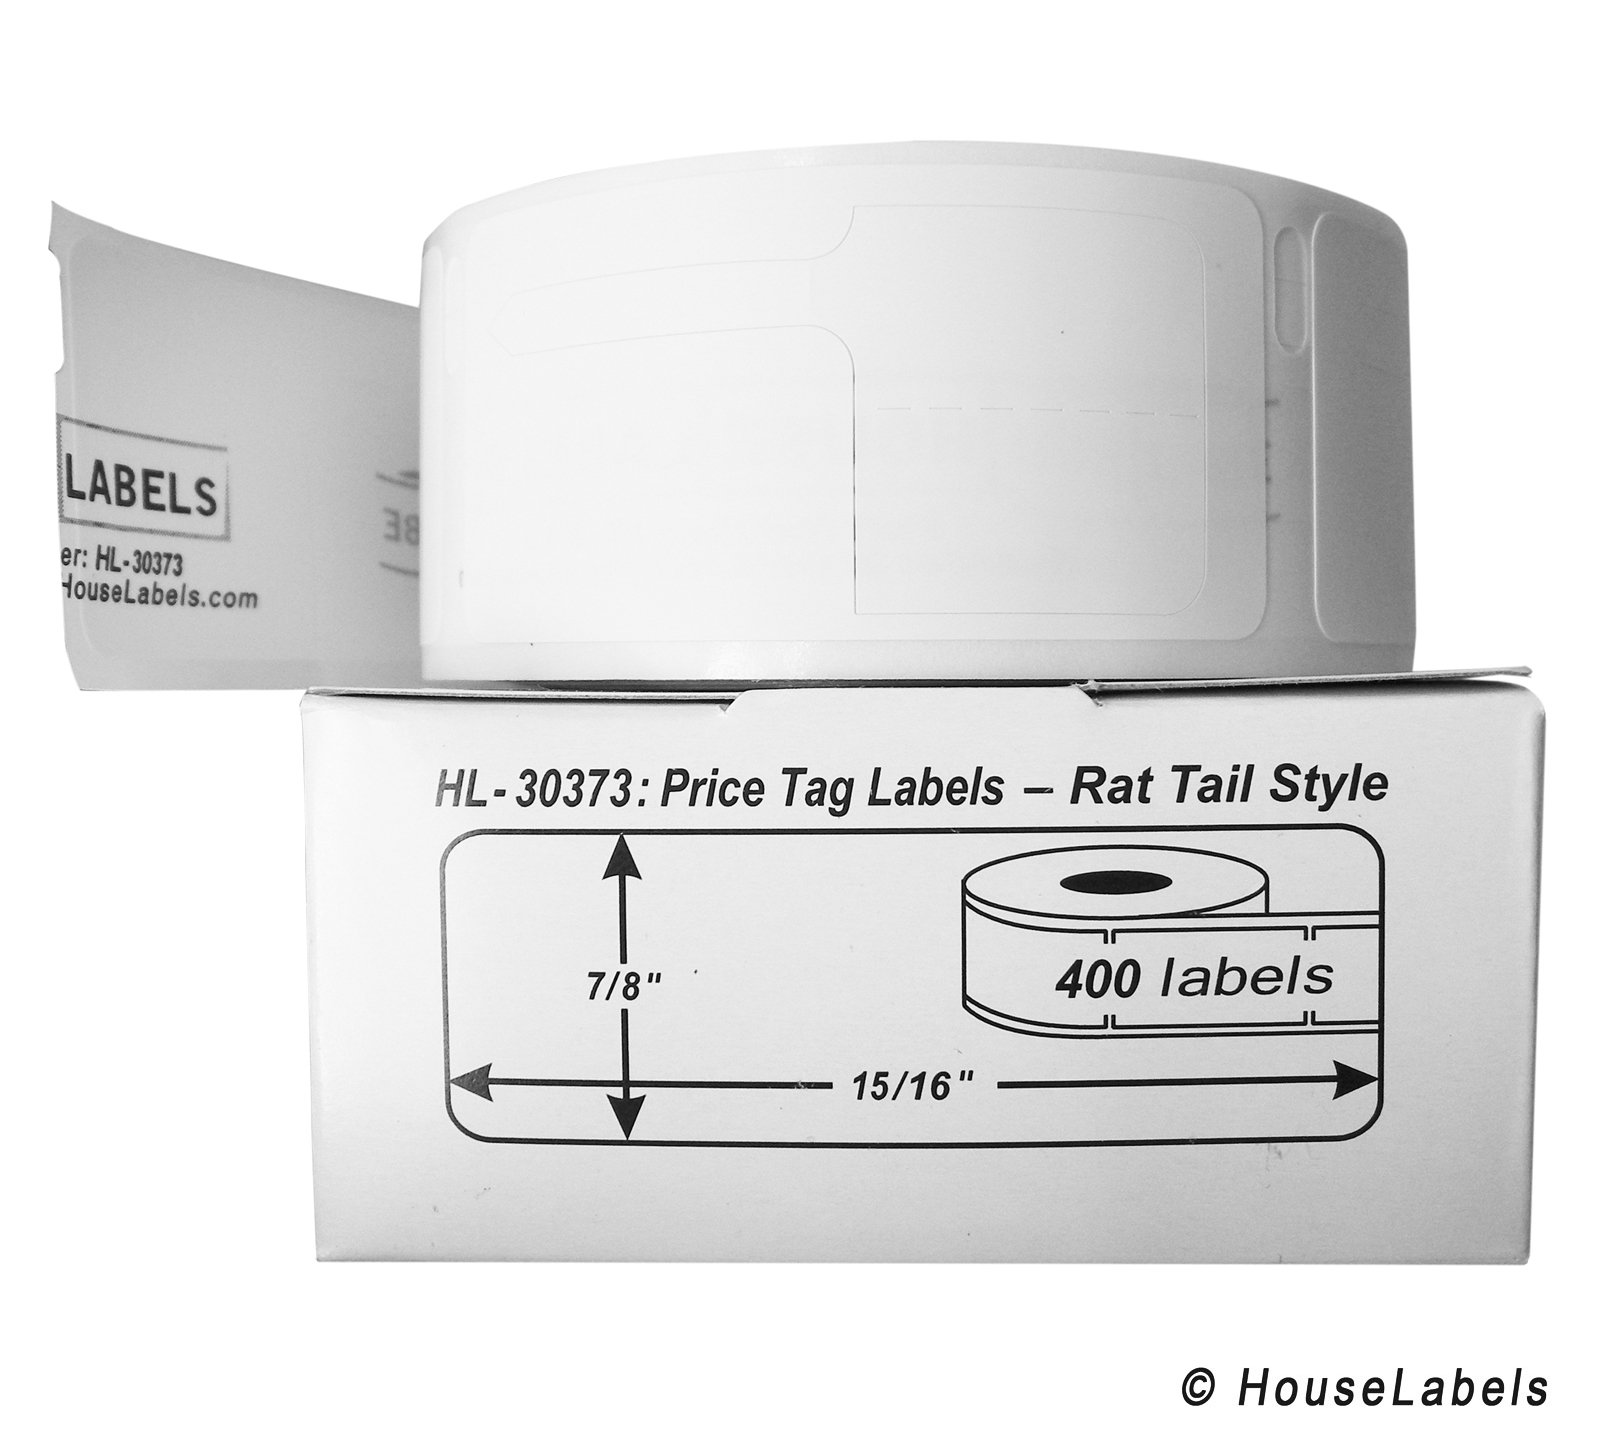 6 Rolls; 400 Labels per Roll of DYMO-Compatible 30373 Pricetag Labels (7/8'' x 15/16'') - BPA Free!